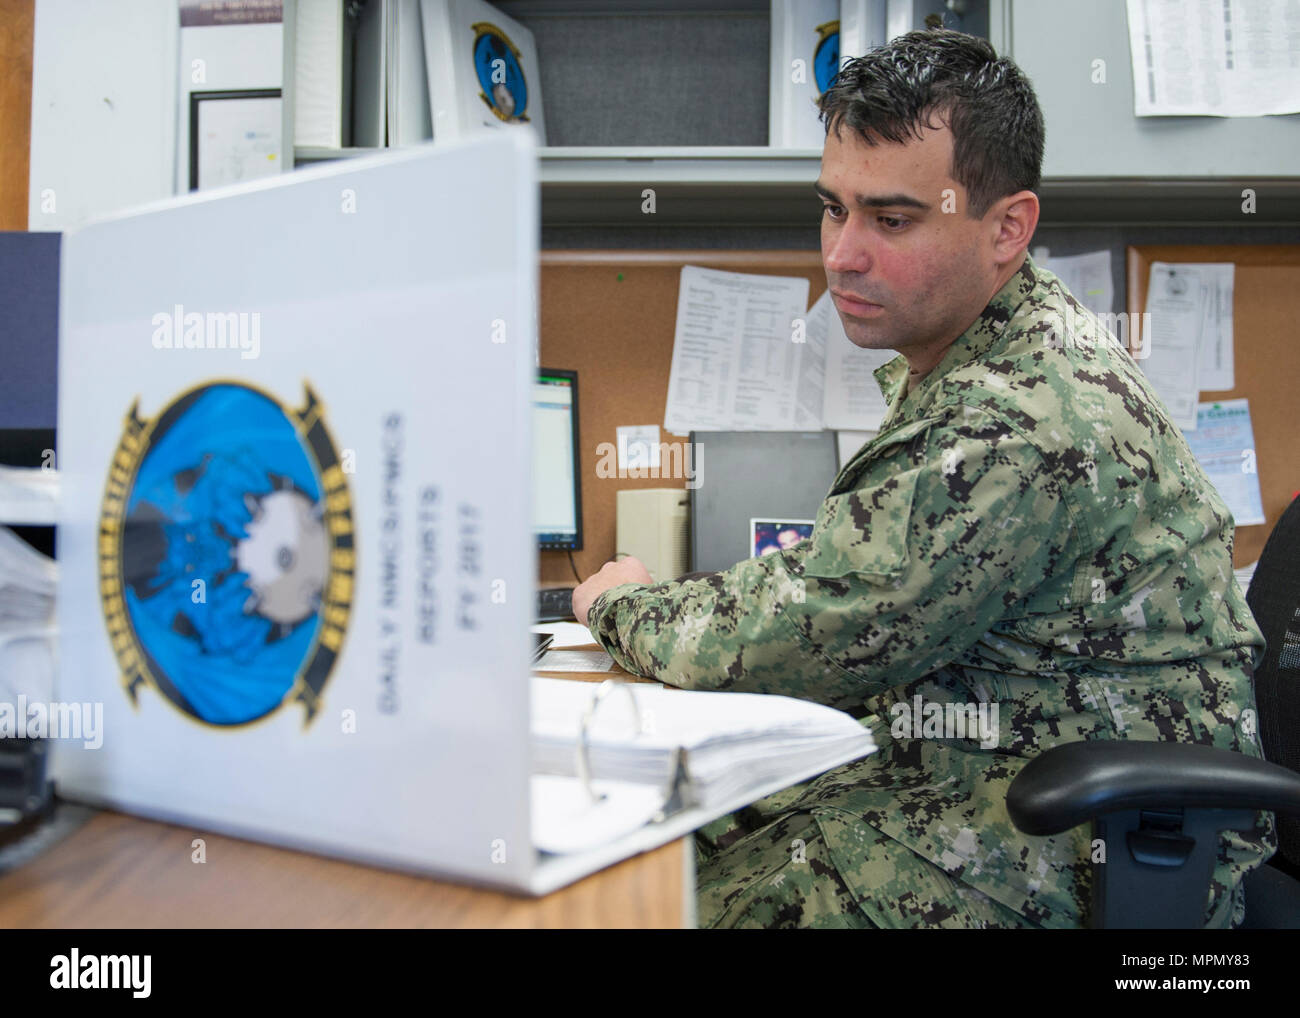 PANAMA CITY, Florida - Logistics Specialist Second Class (AW) Michael Semler tracks helicopter parts on order while on duty at the Naval Surface Warfare Center Panama City Division Aviation Unit March 16, 2017. U.S. Navy Photo by Eddie Green (Released) 170316-N-UI581-019 Stock Photo